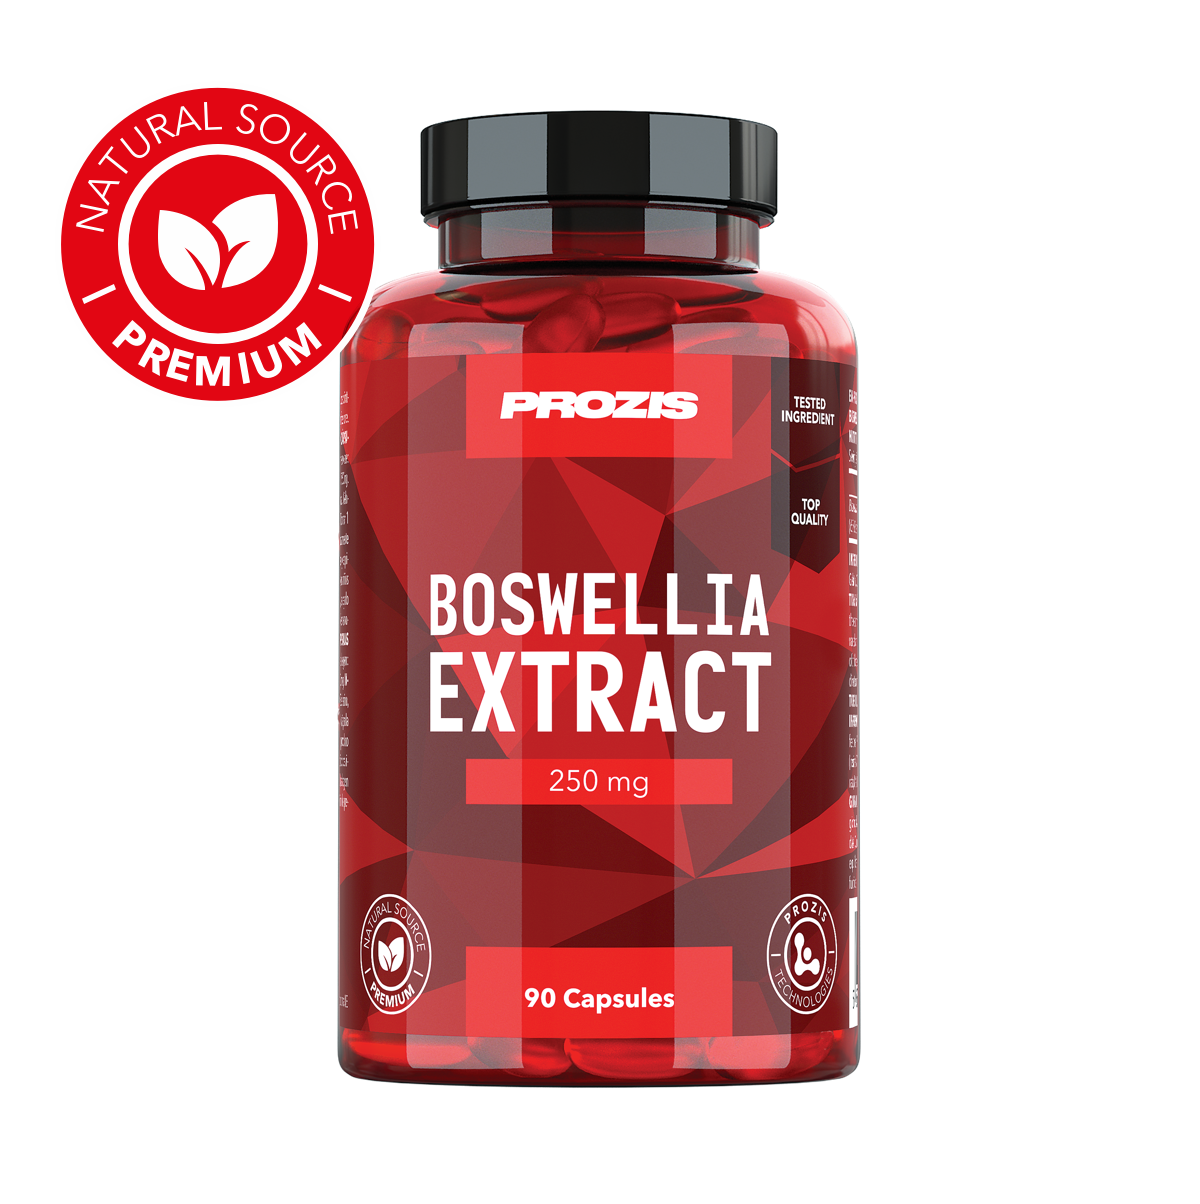 Prozis Boswellia Extract 250mg 90 caps